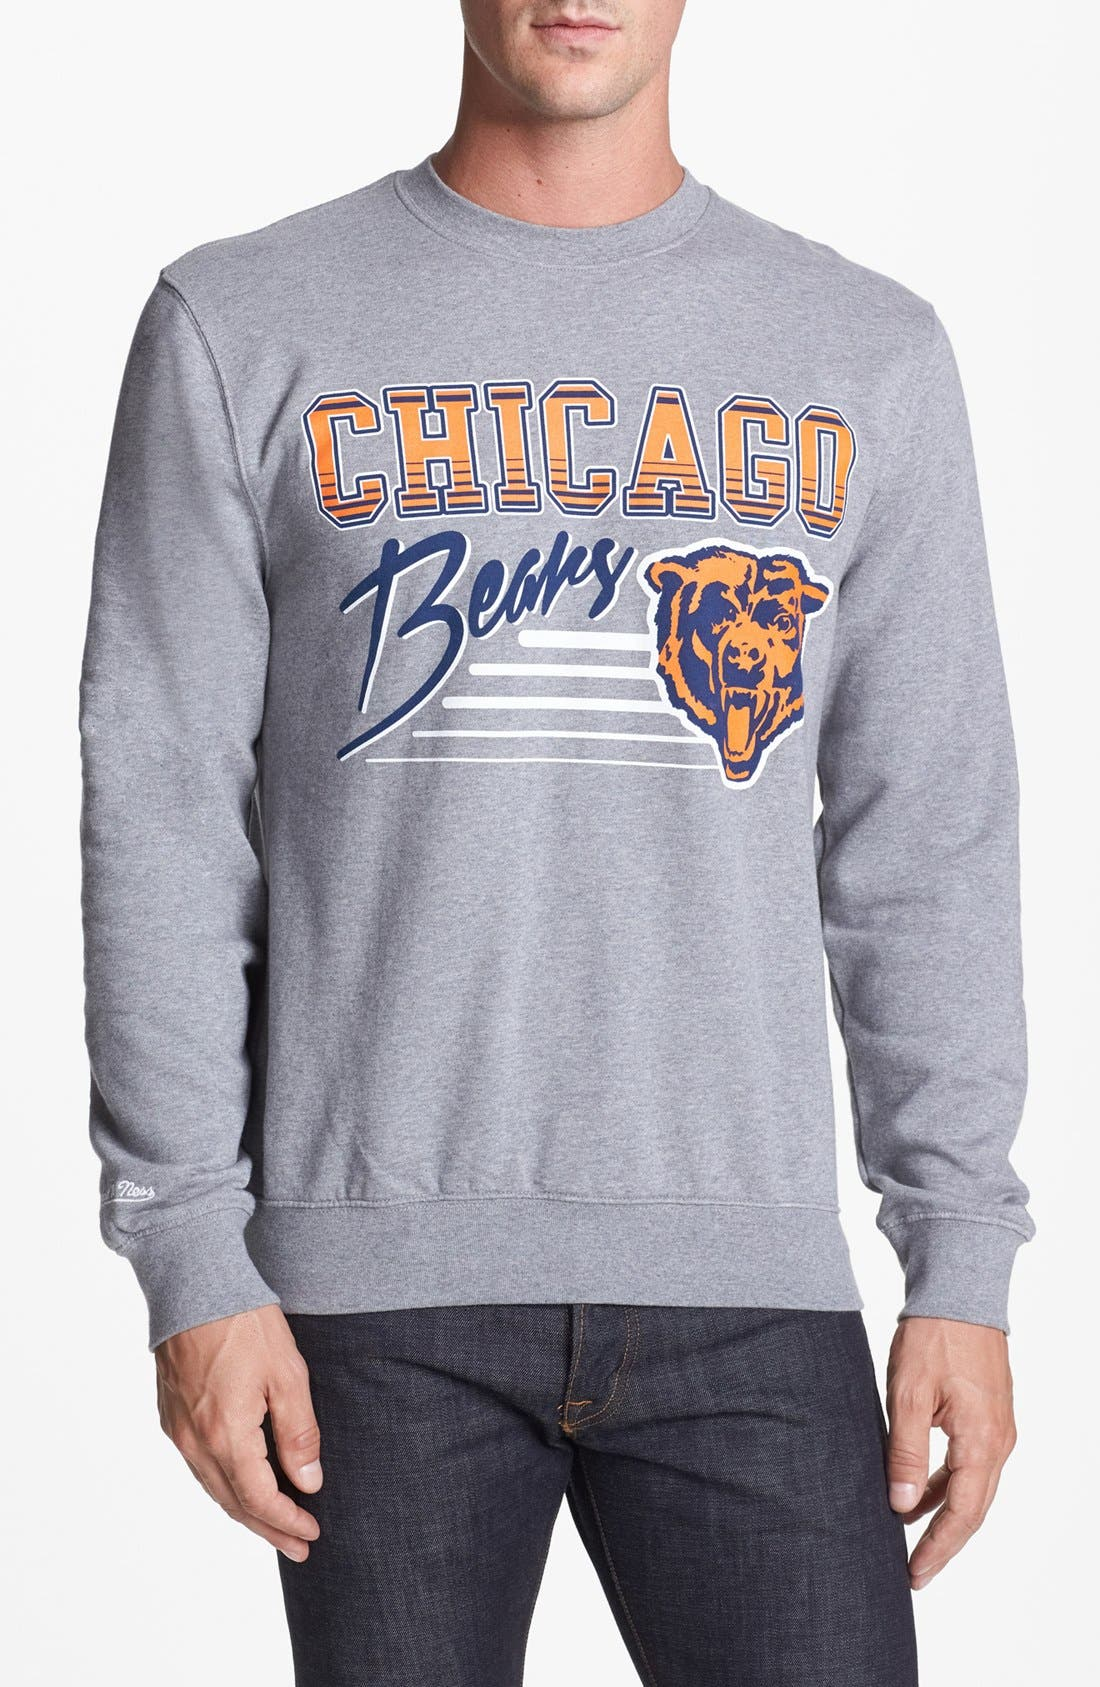 Main Image - Mitchell & Ness 'Chicago Bears' Sweatshirt